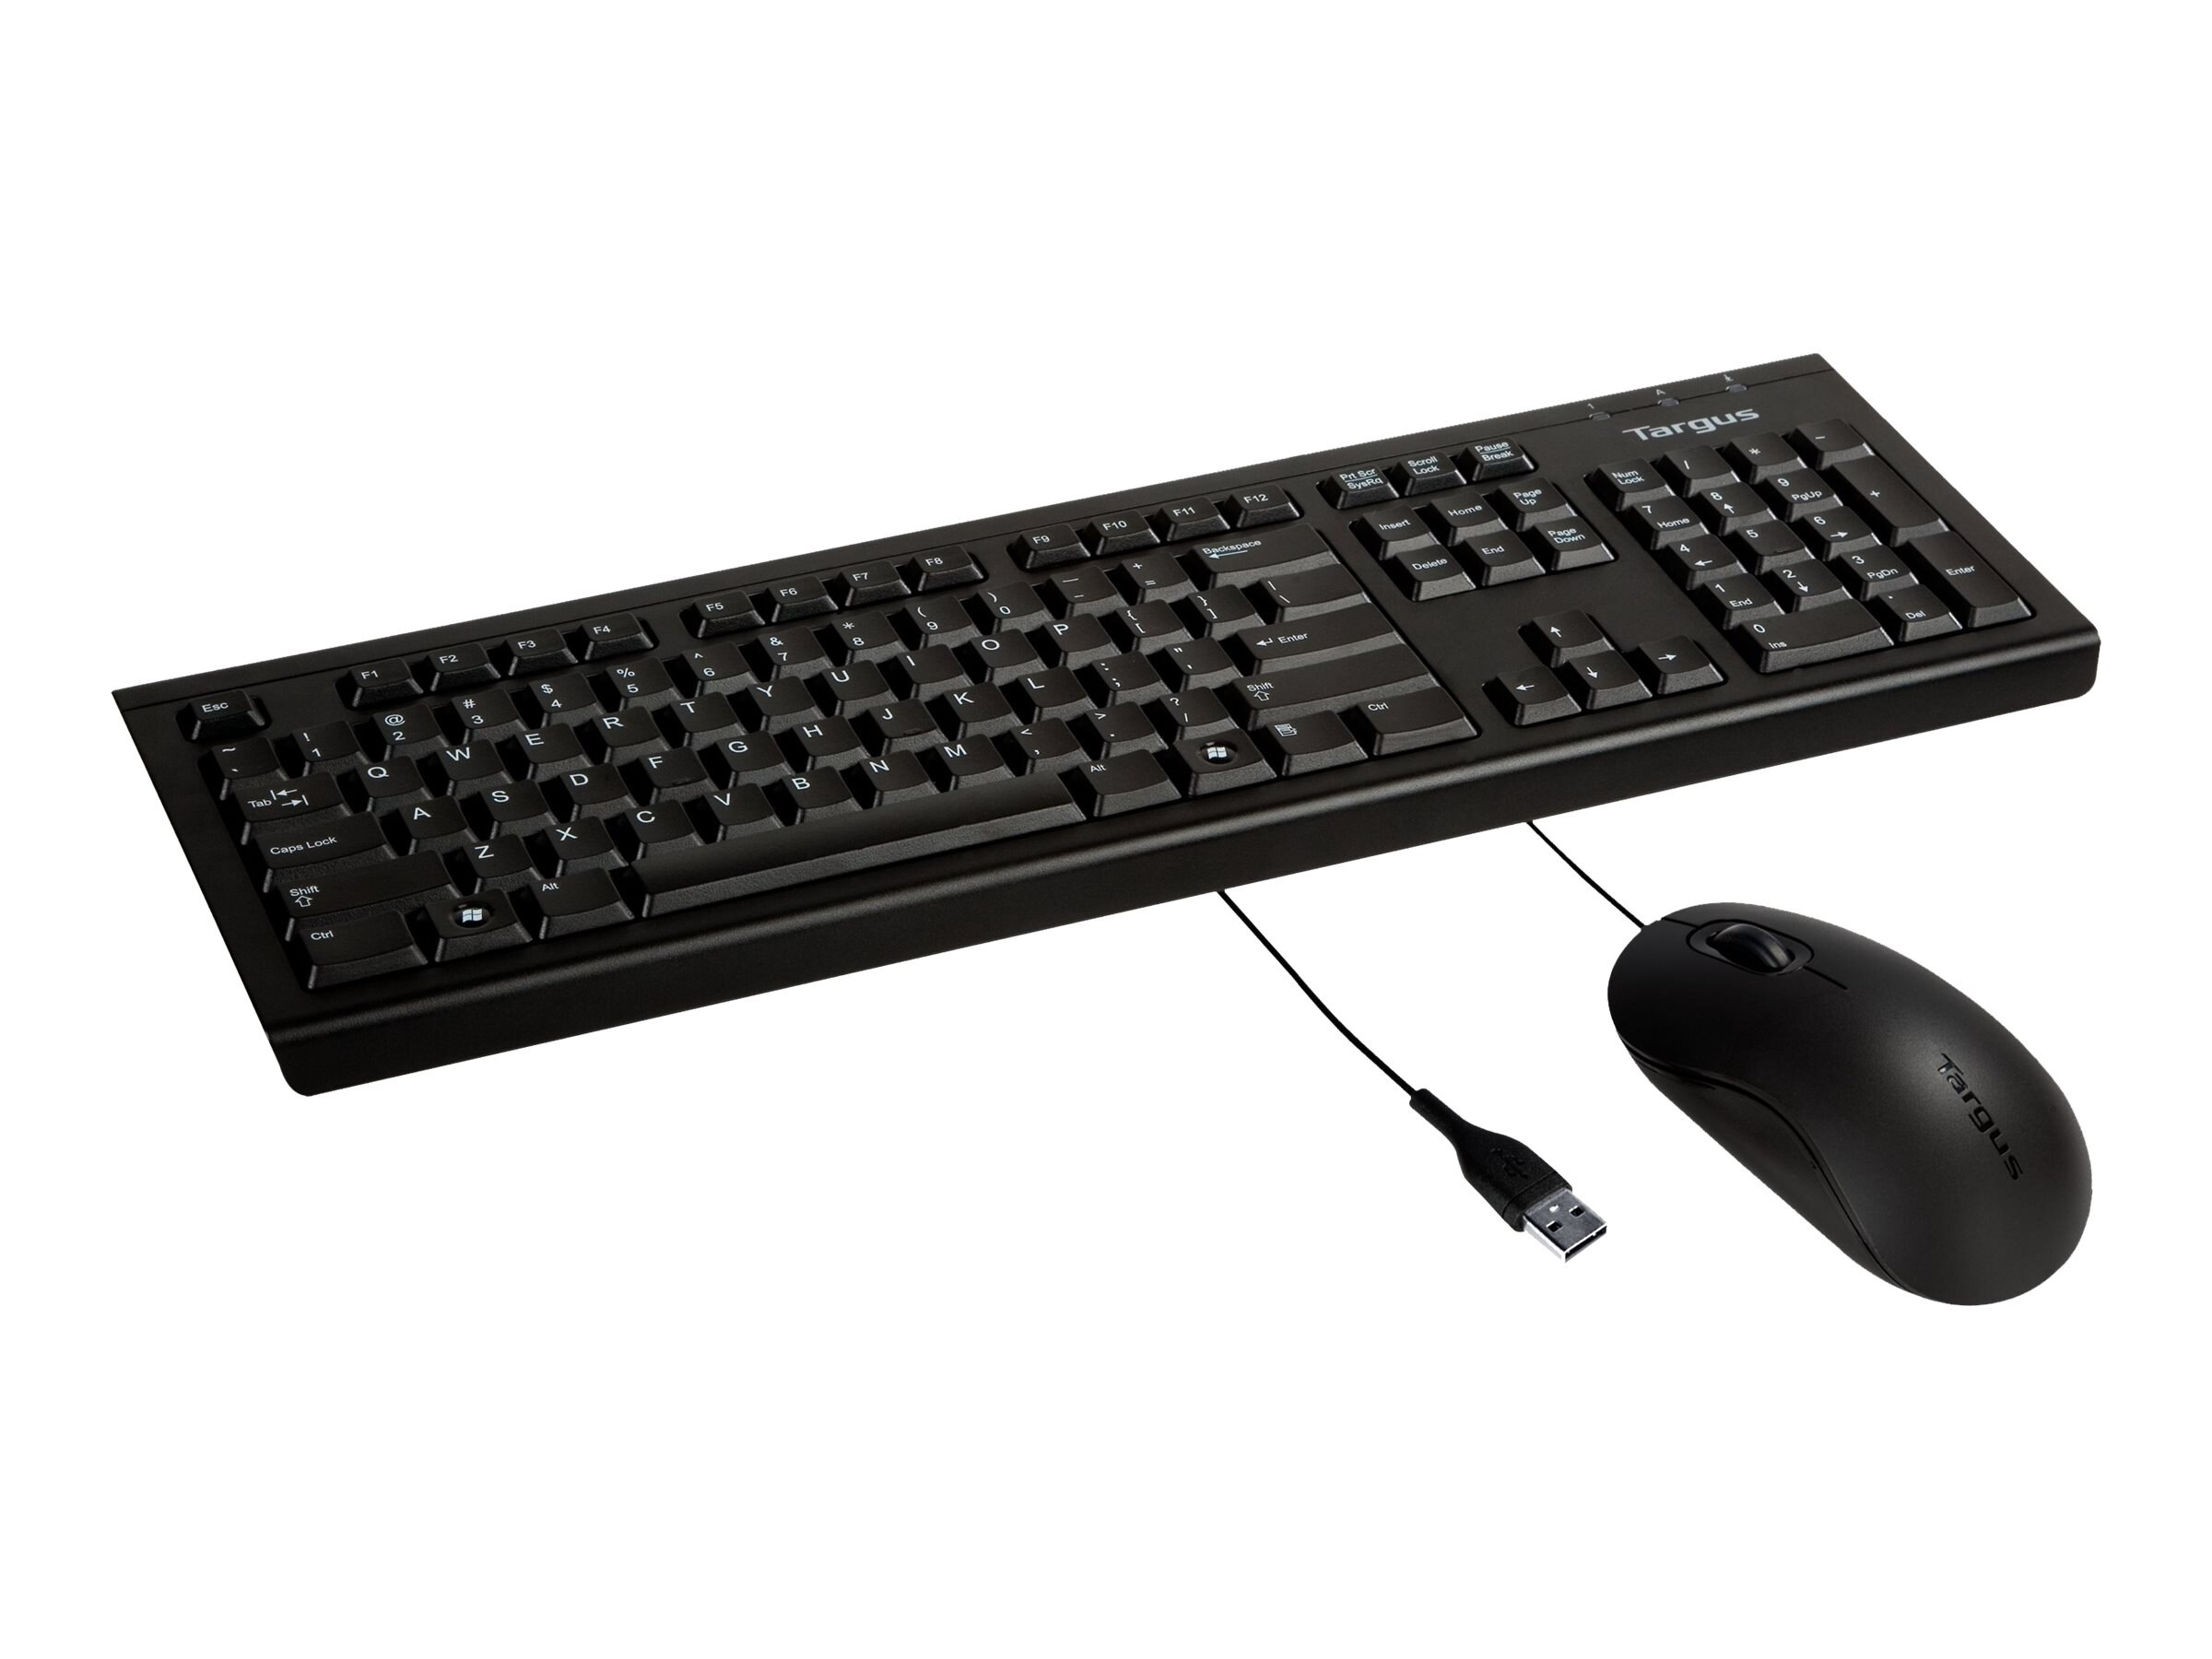 Targus Corporate HID Keyboard and Mouse Bundle with PS 2 Adapter, BUS0067, 6801183, Keyboard/Mouse Combinations